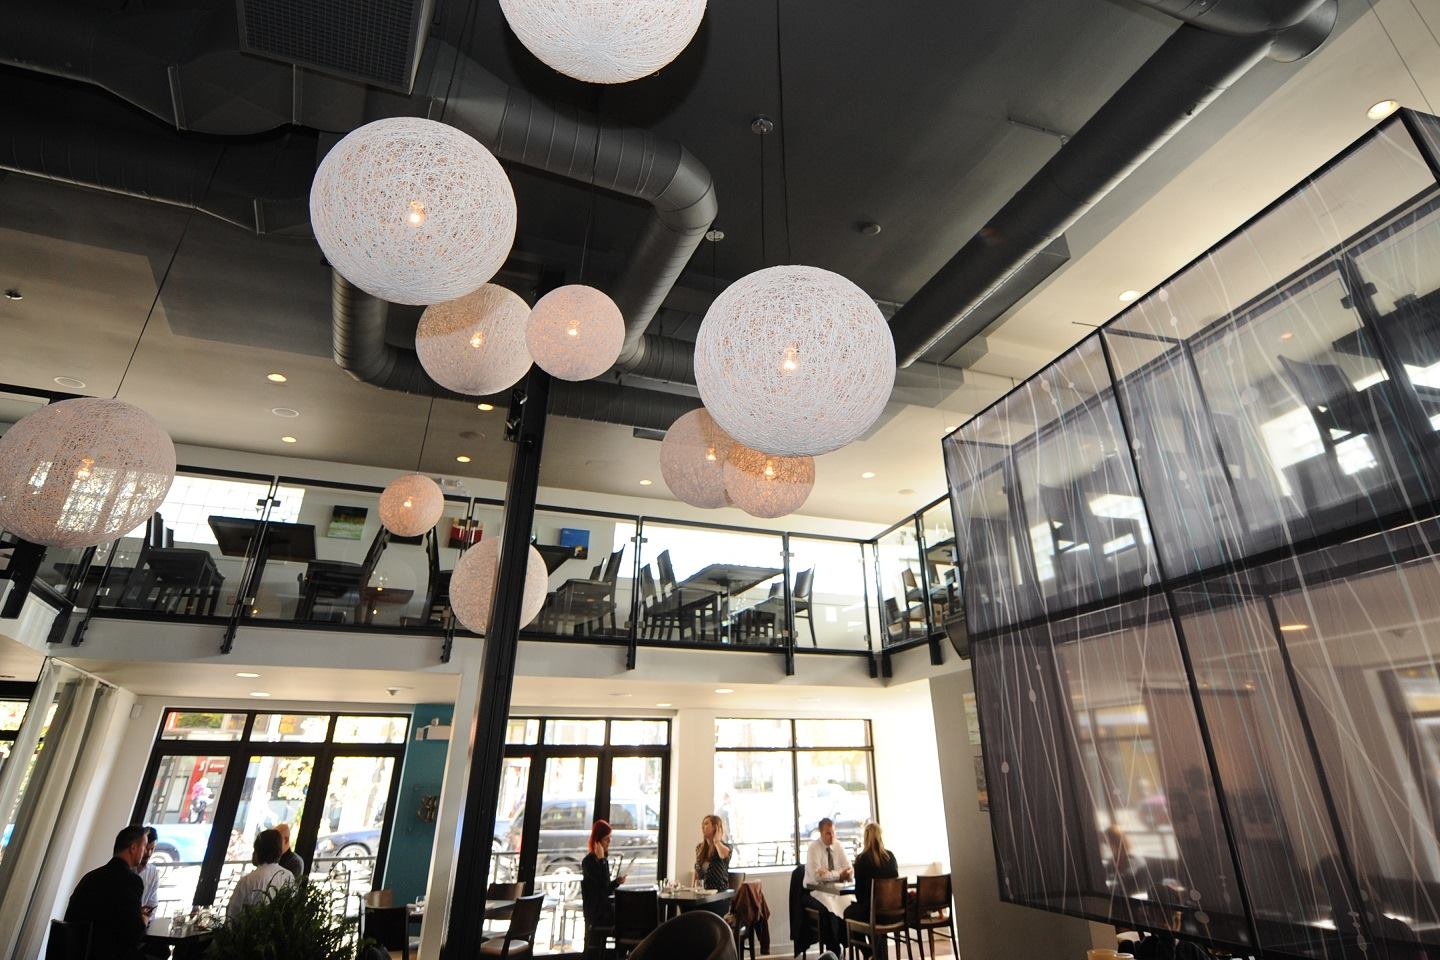 The City Grill Event Centre, located in downtown Windsor, Ontario.